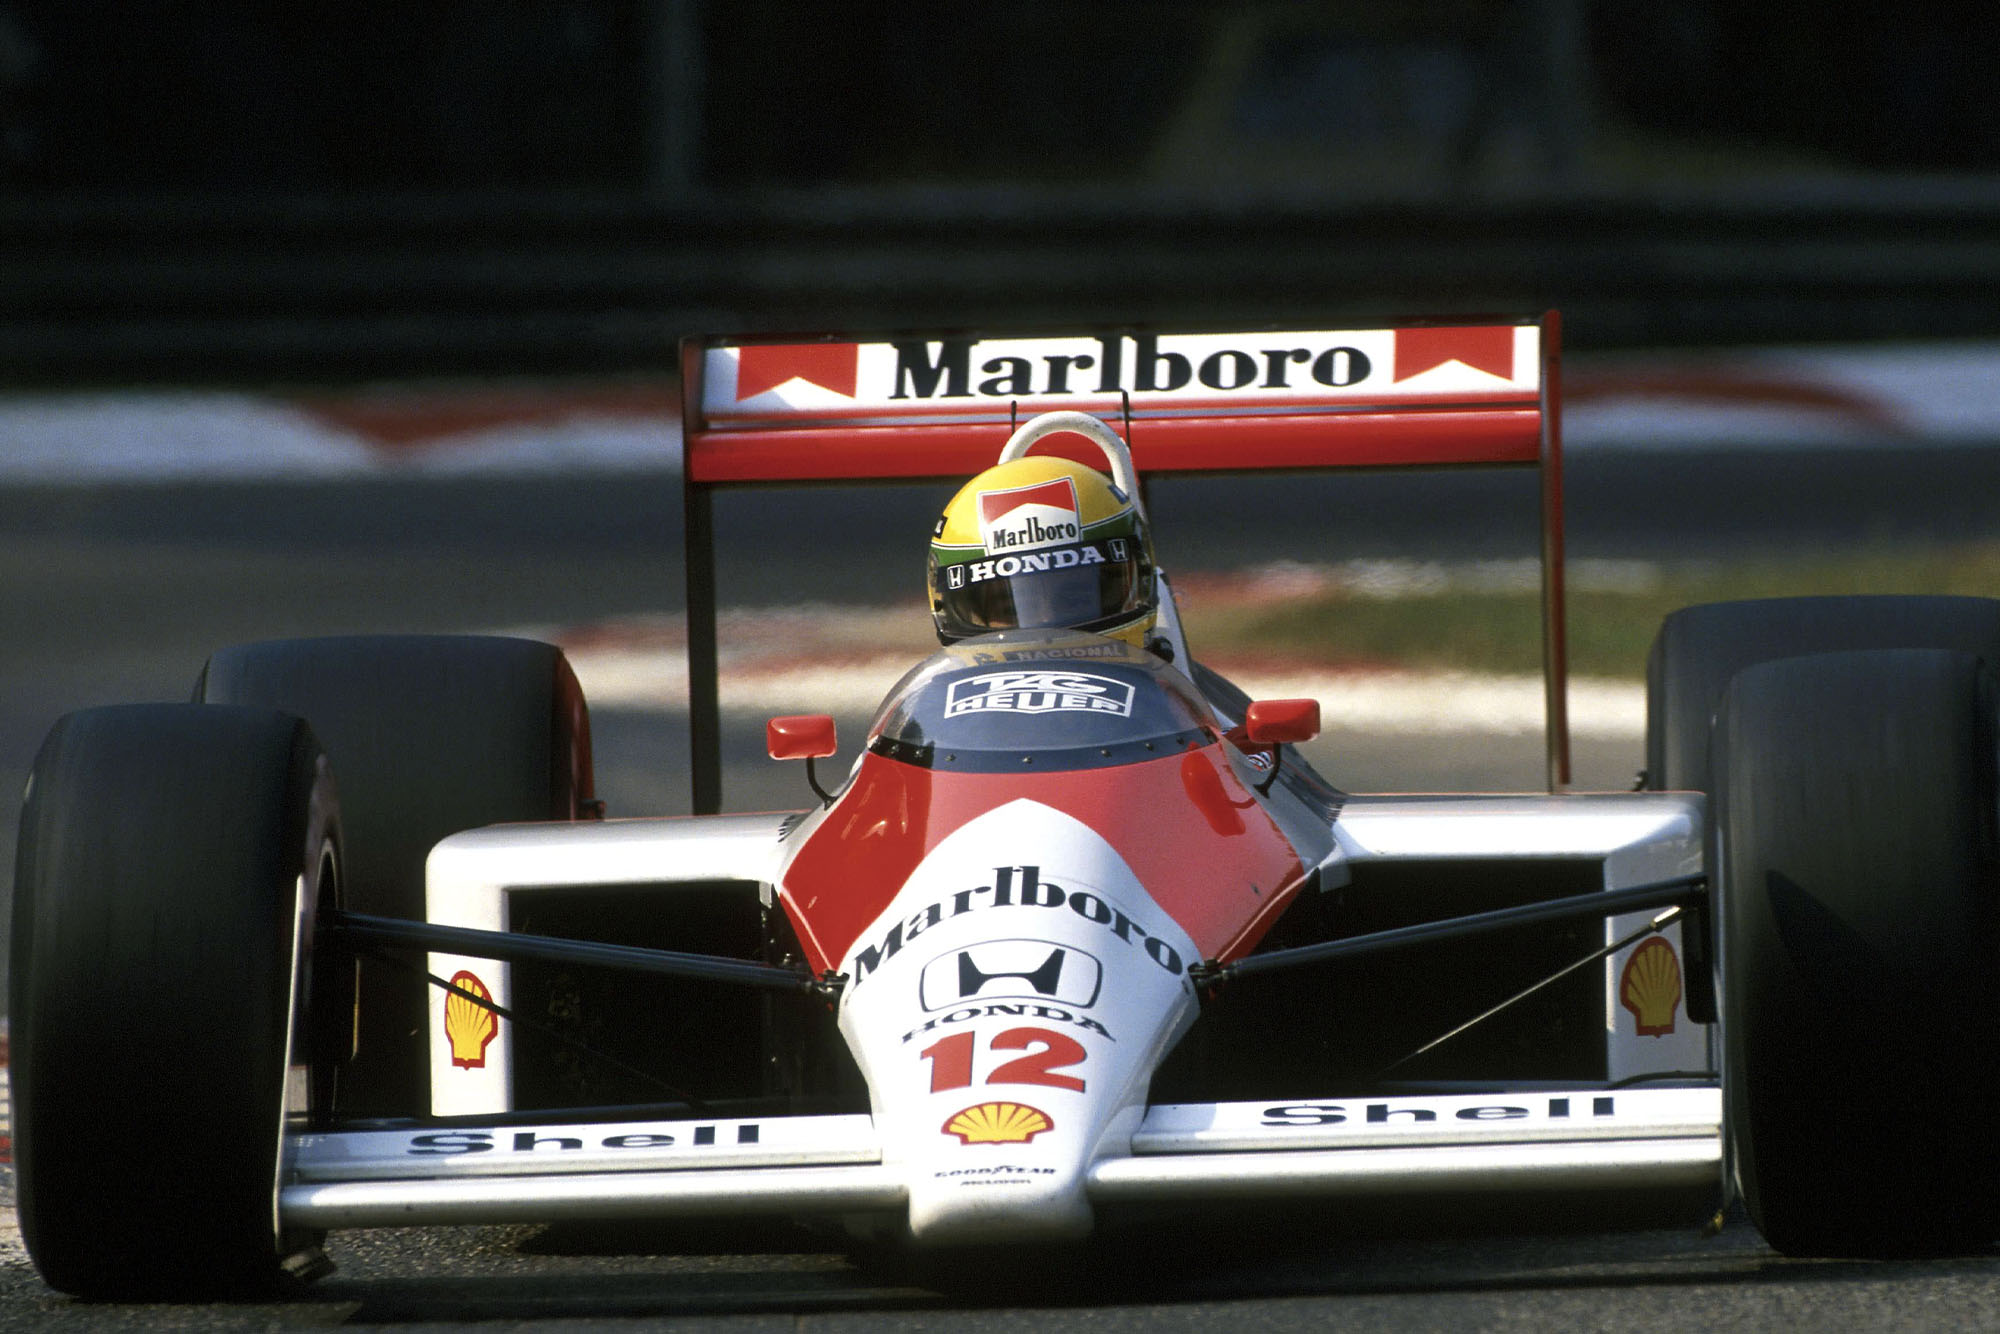 1988 GER GP feature